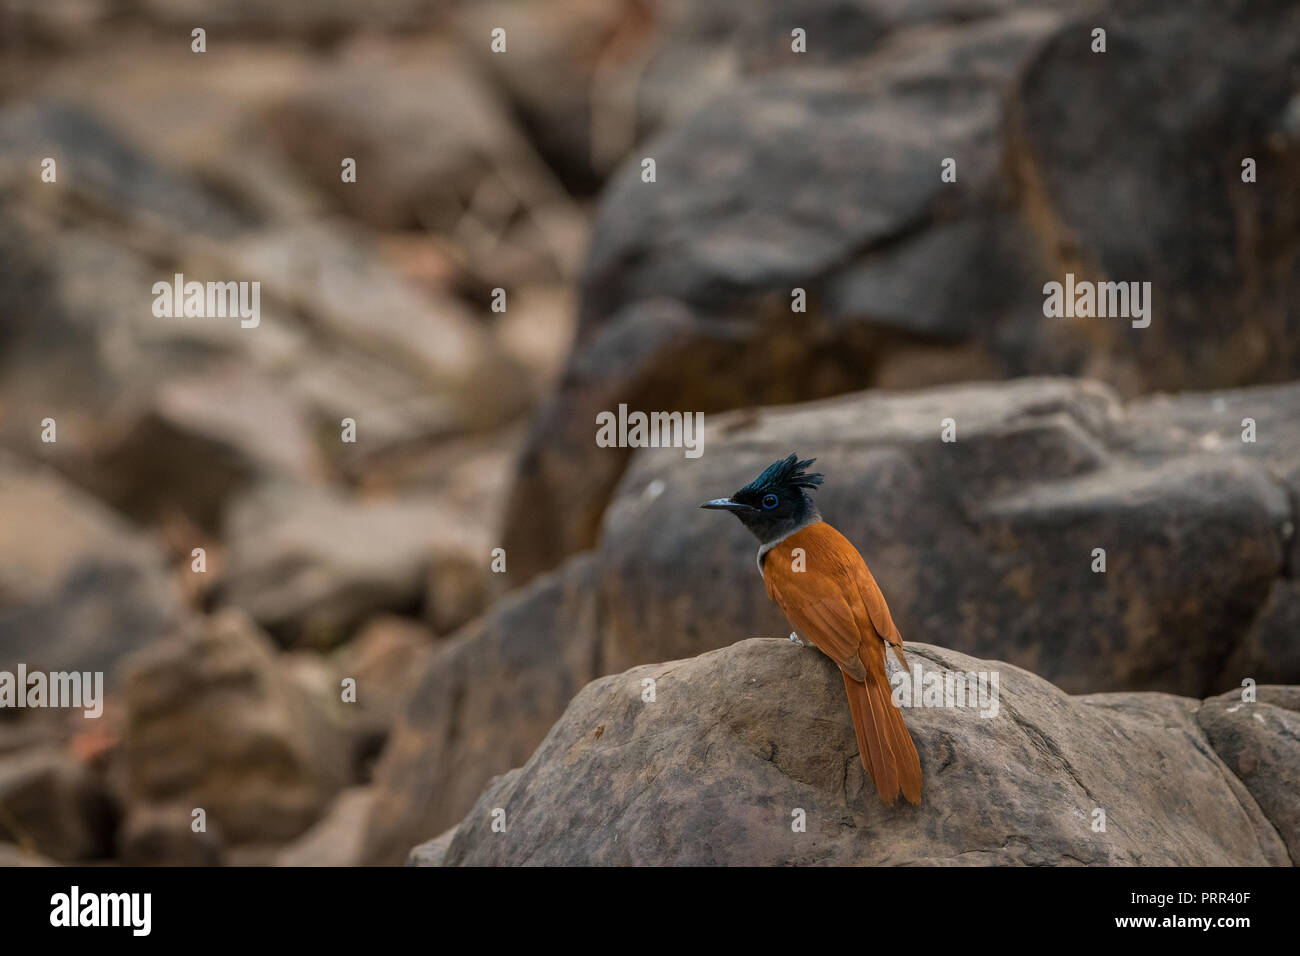 Indian paradise flycatcher, Terpsiphone paradisi, in the nature habitat, ranthambore National Park, India. Beautiful bird with long tail in sitting on - Stock Image